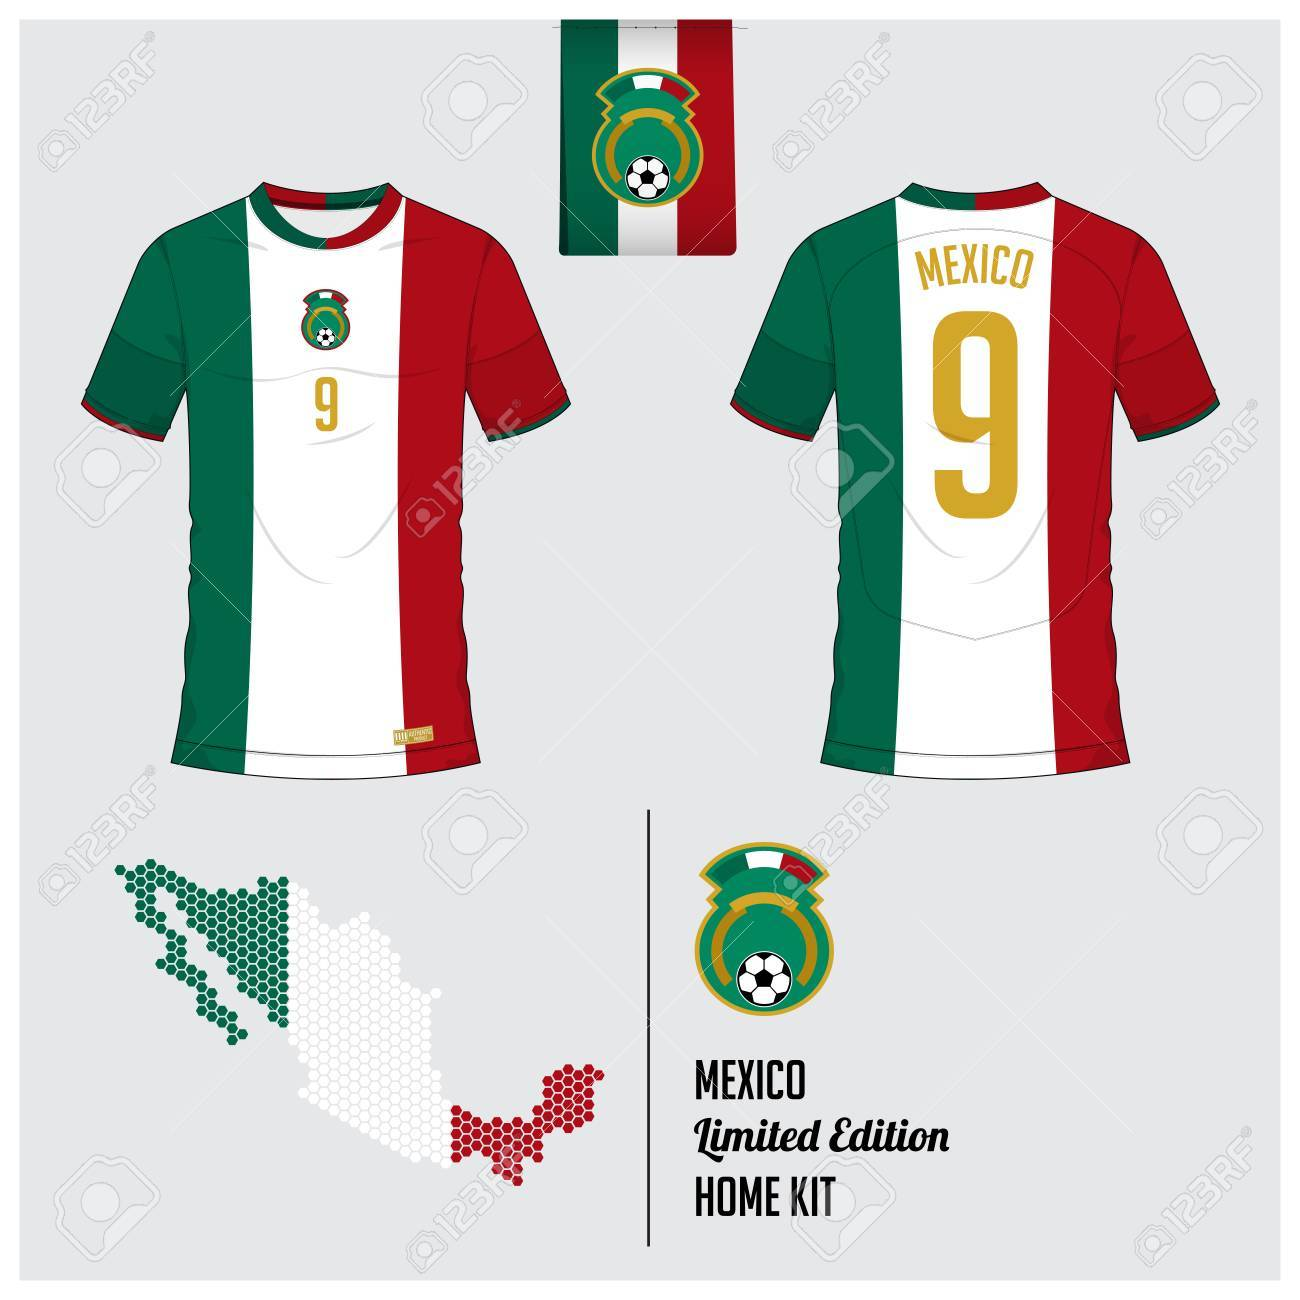 2948548ac5c Soccer jersey or football kit, template for Mexico National Football Team.  Front and back